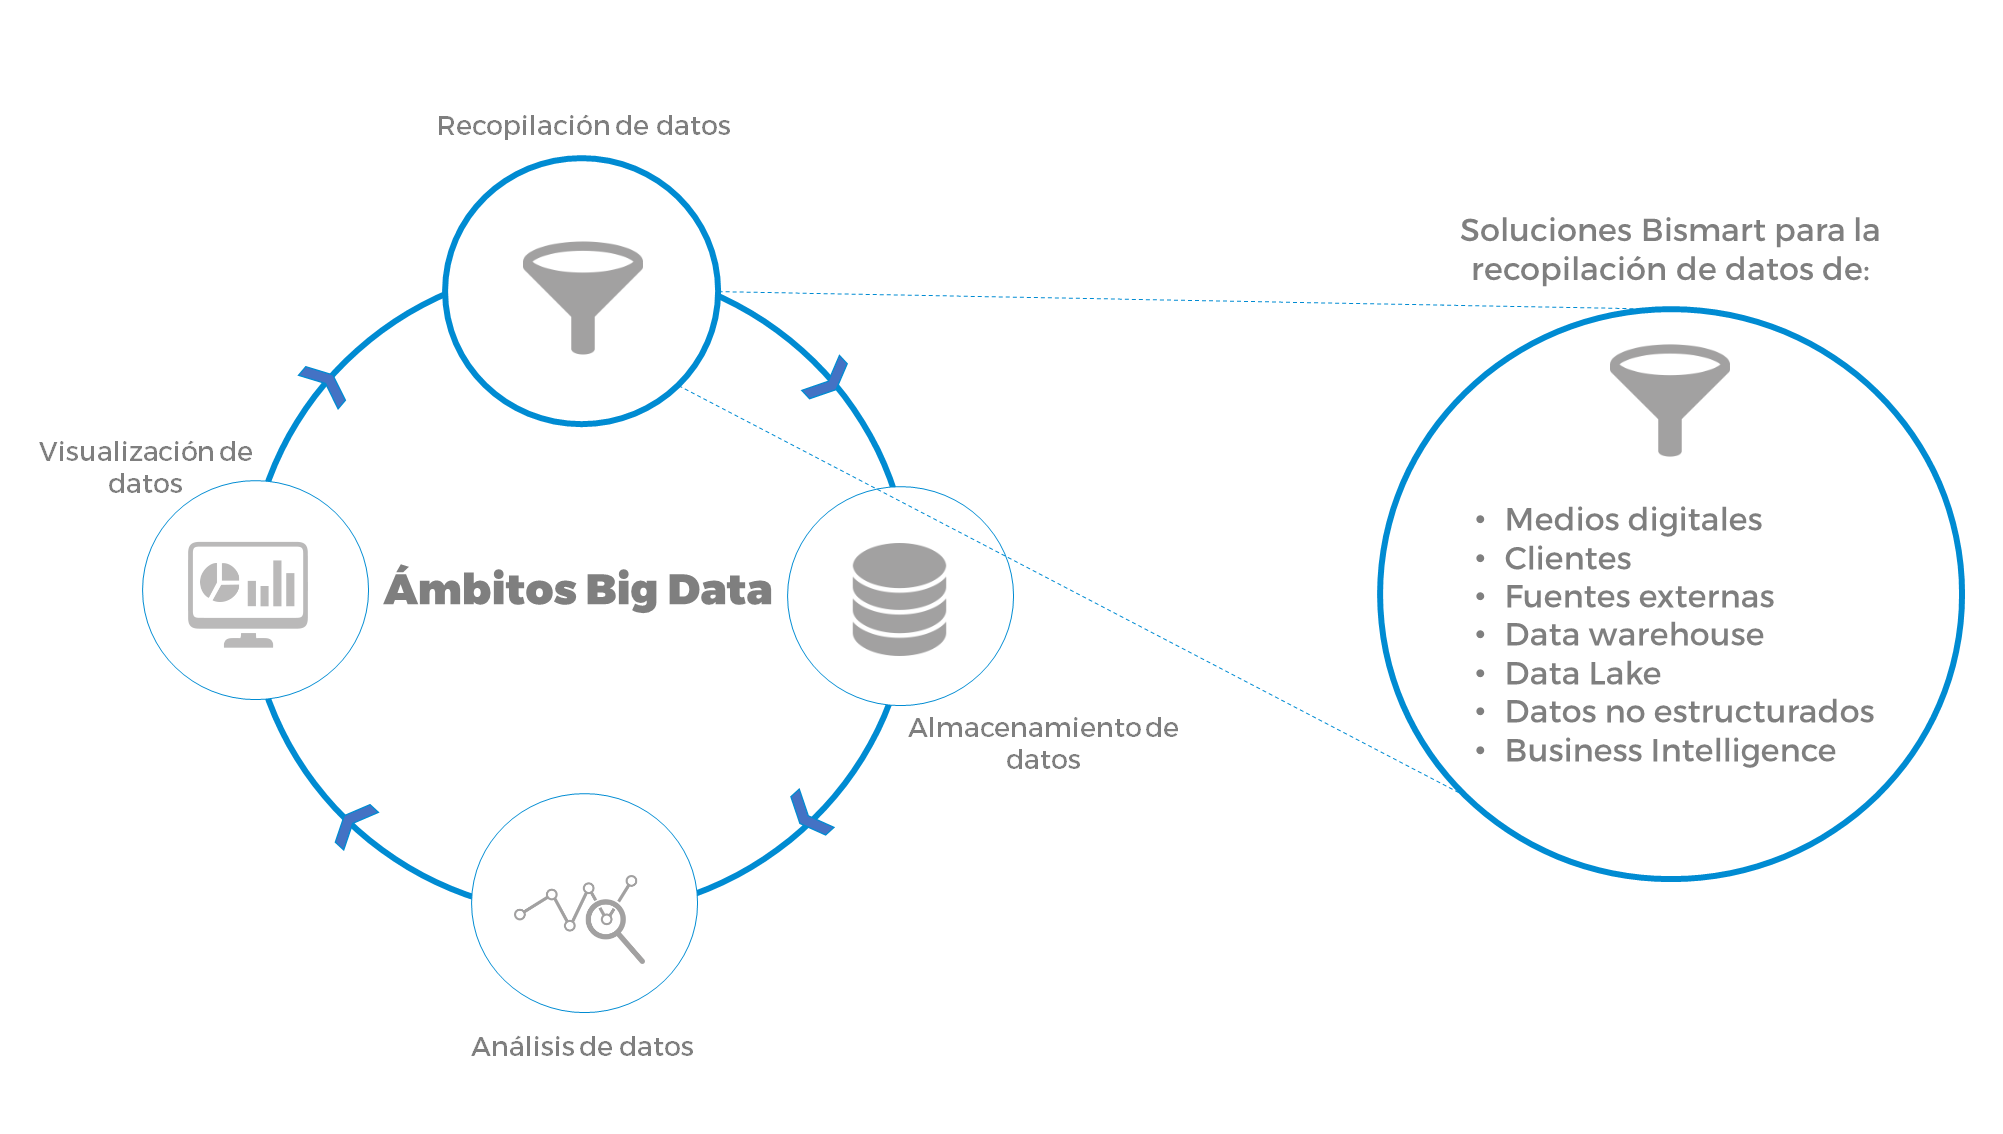 big data recopilacion de datos bismart